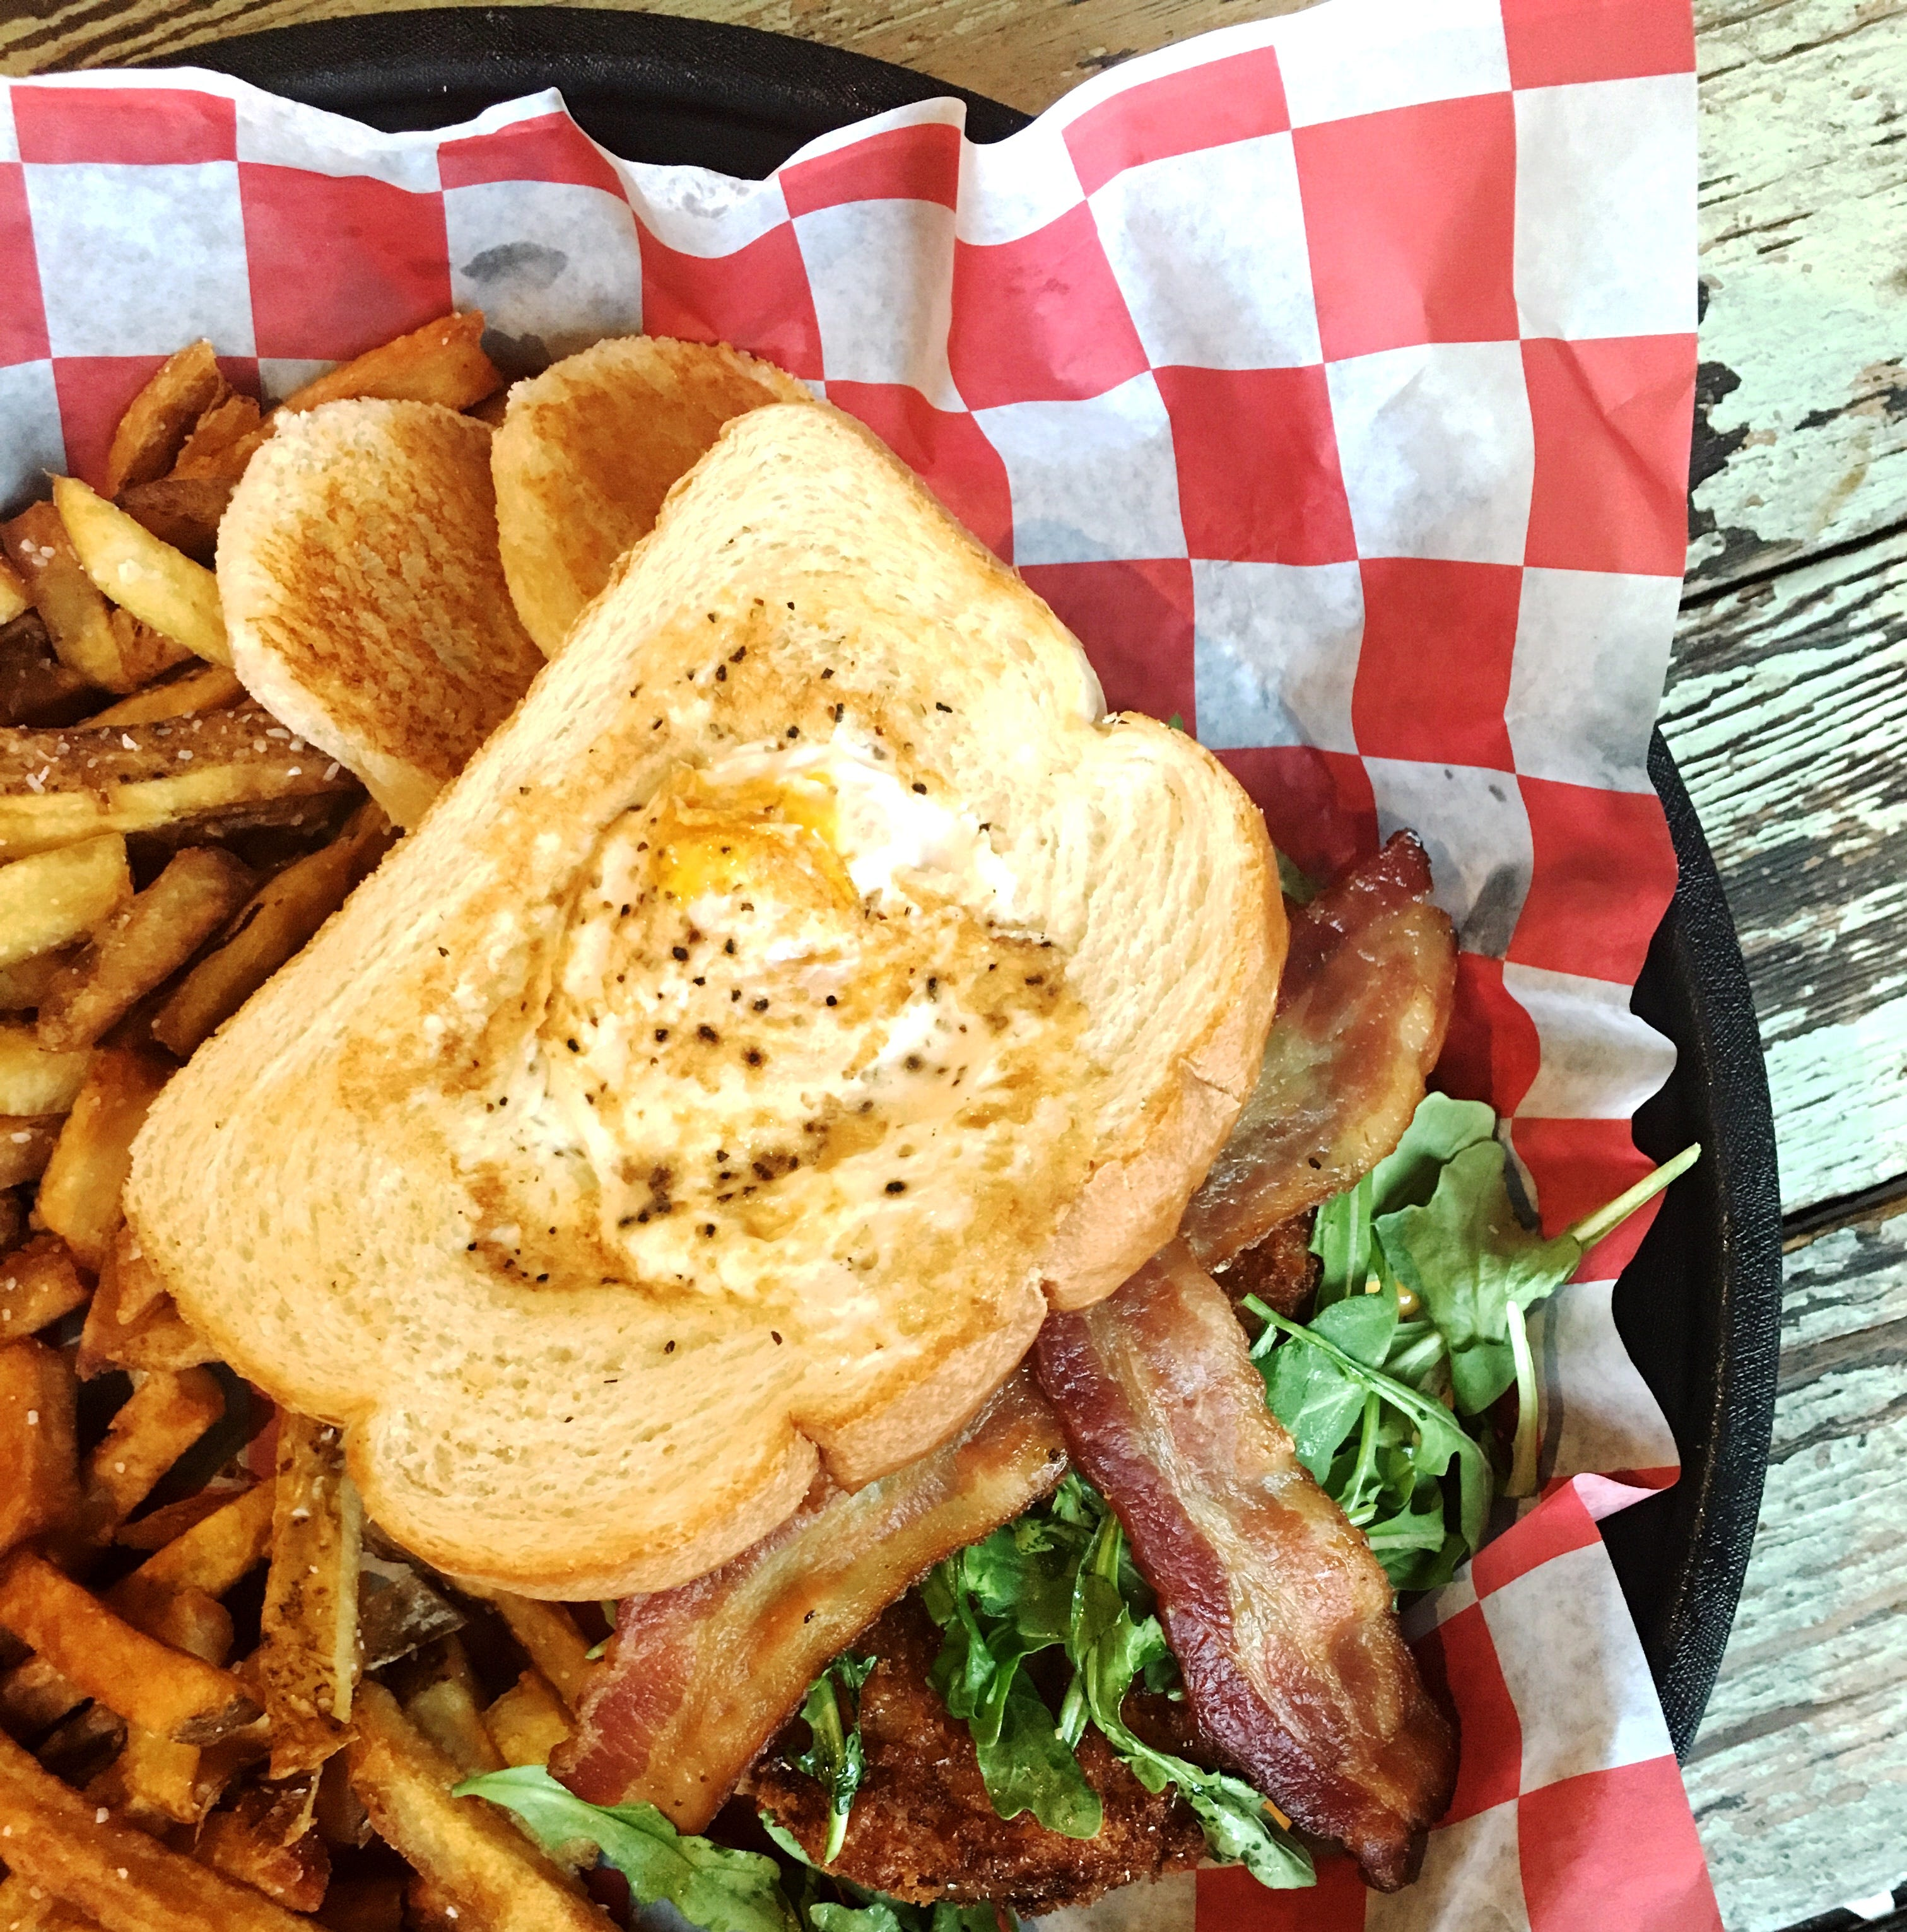 The  Gashouse BLT from Acme Feed & Seed.